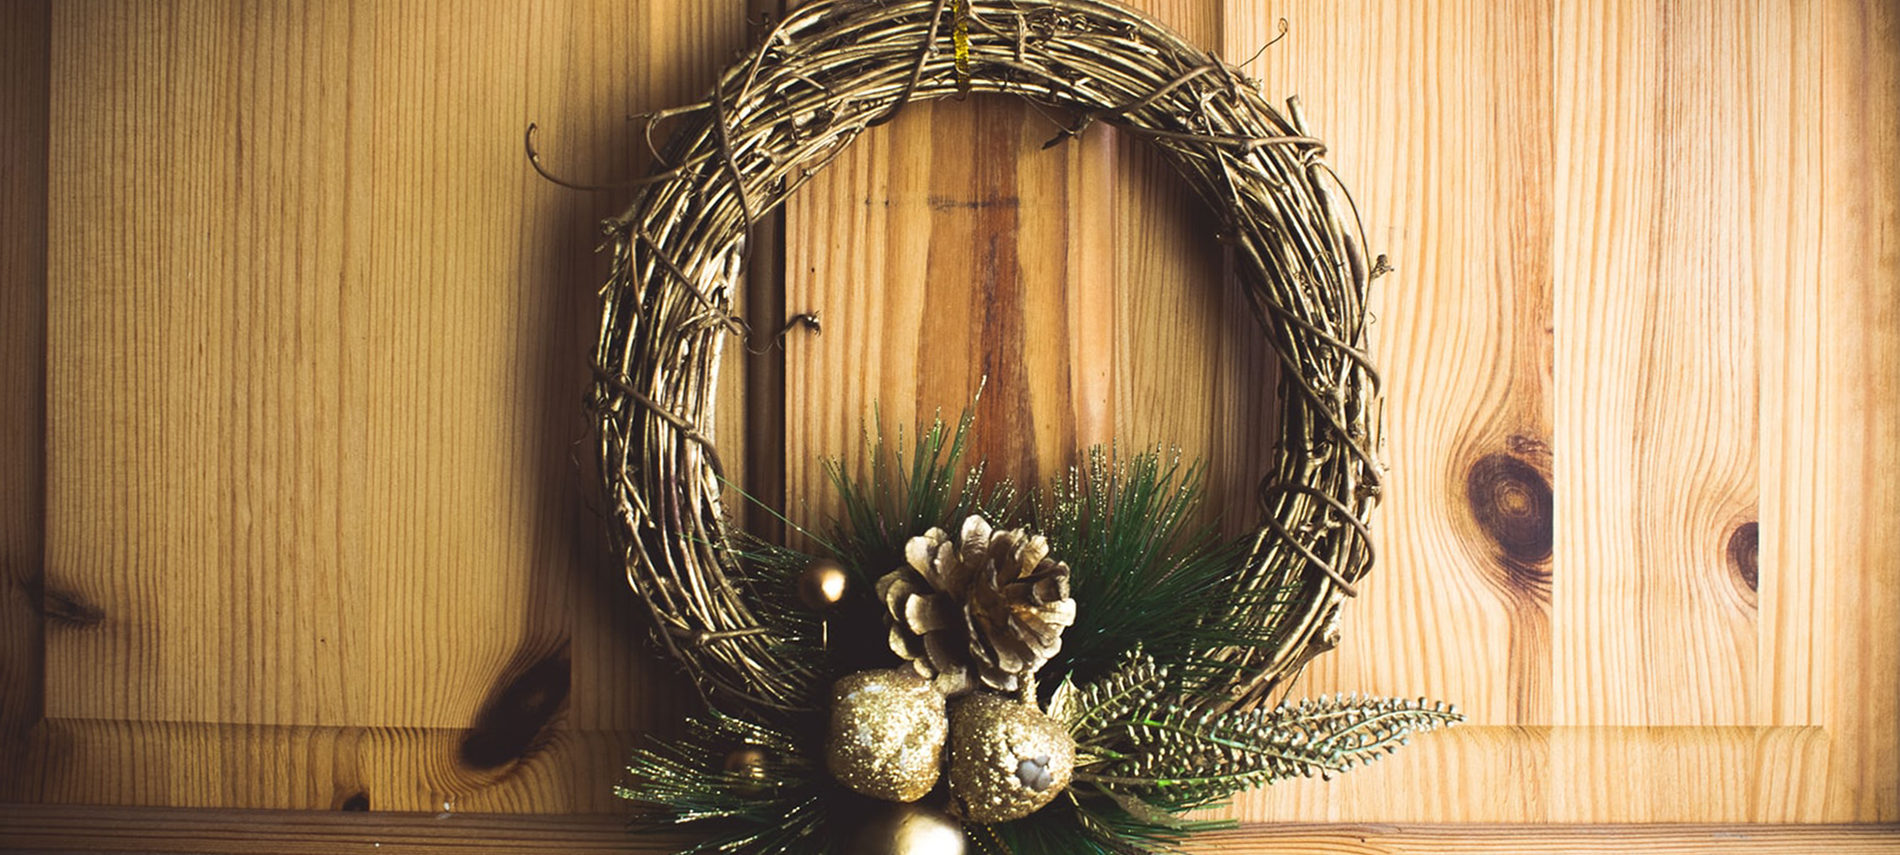 grapevine wreath with pine cones gold balls greens at bottom hanging on wood door